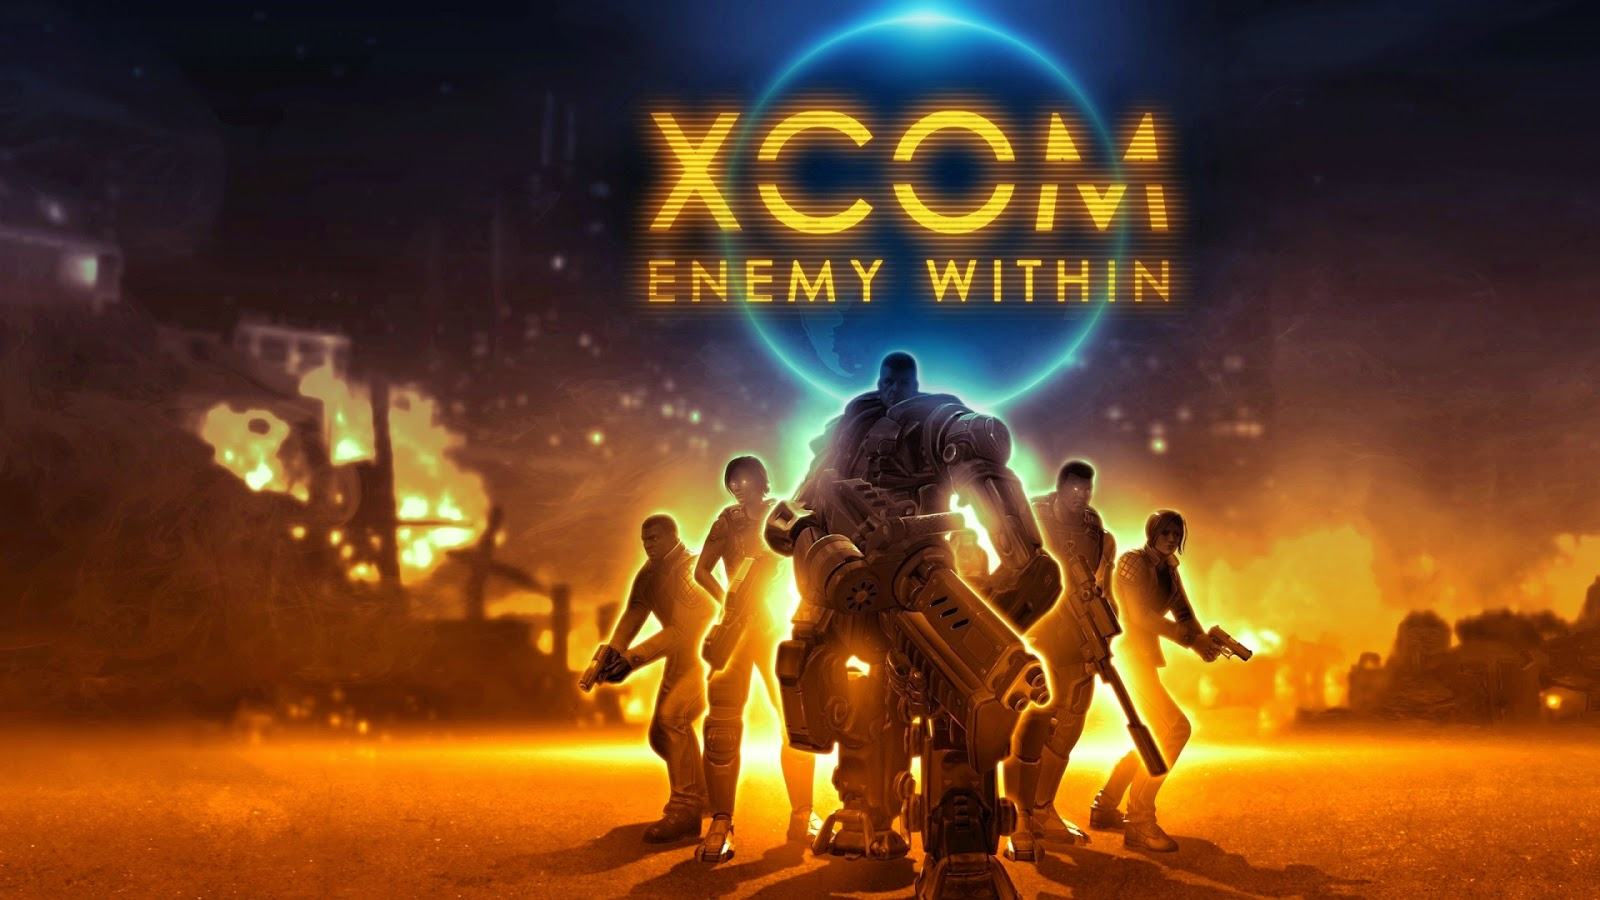 XCOM: Enemy Within v1.2.0 + (Mod) [Link Direto]